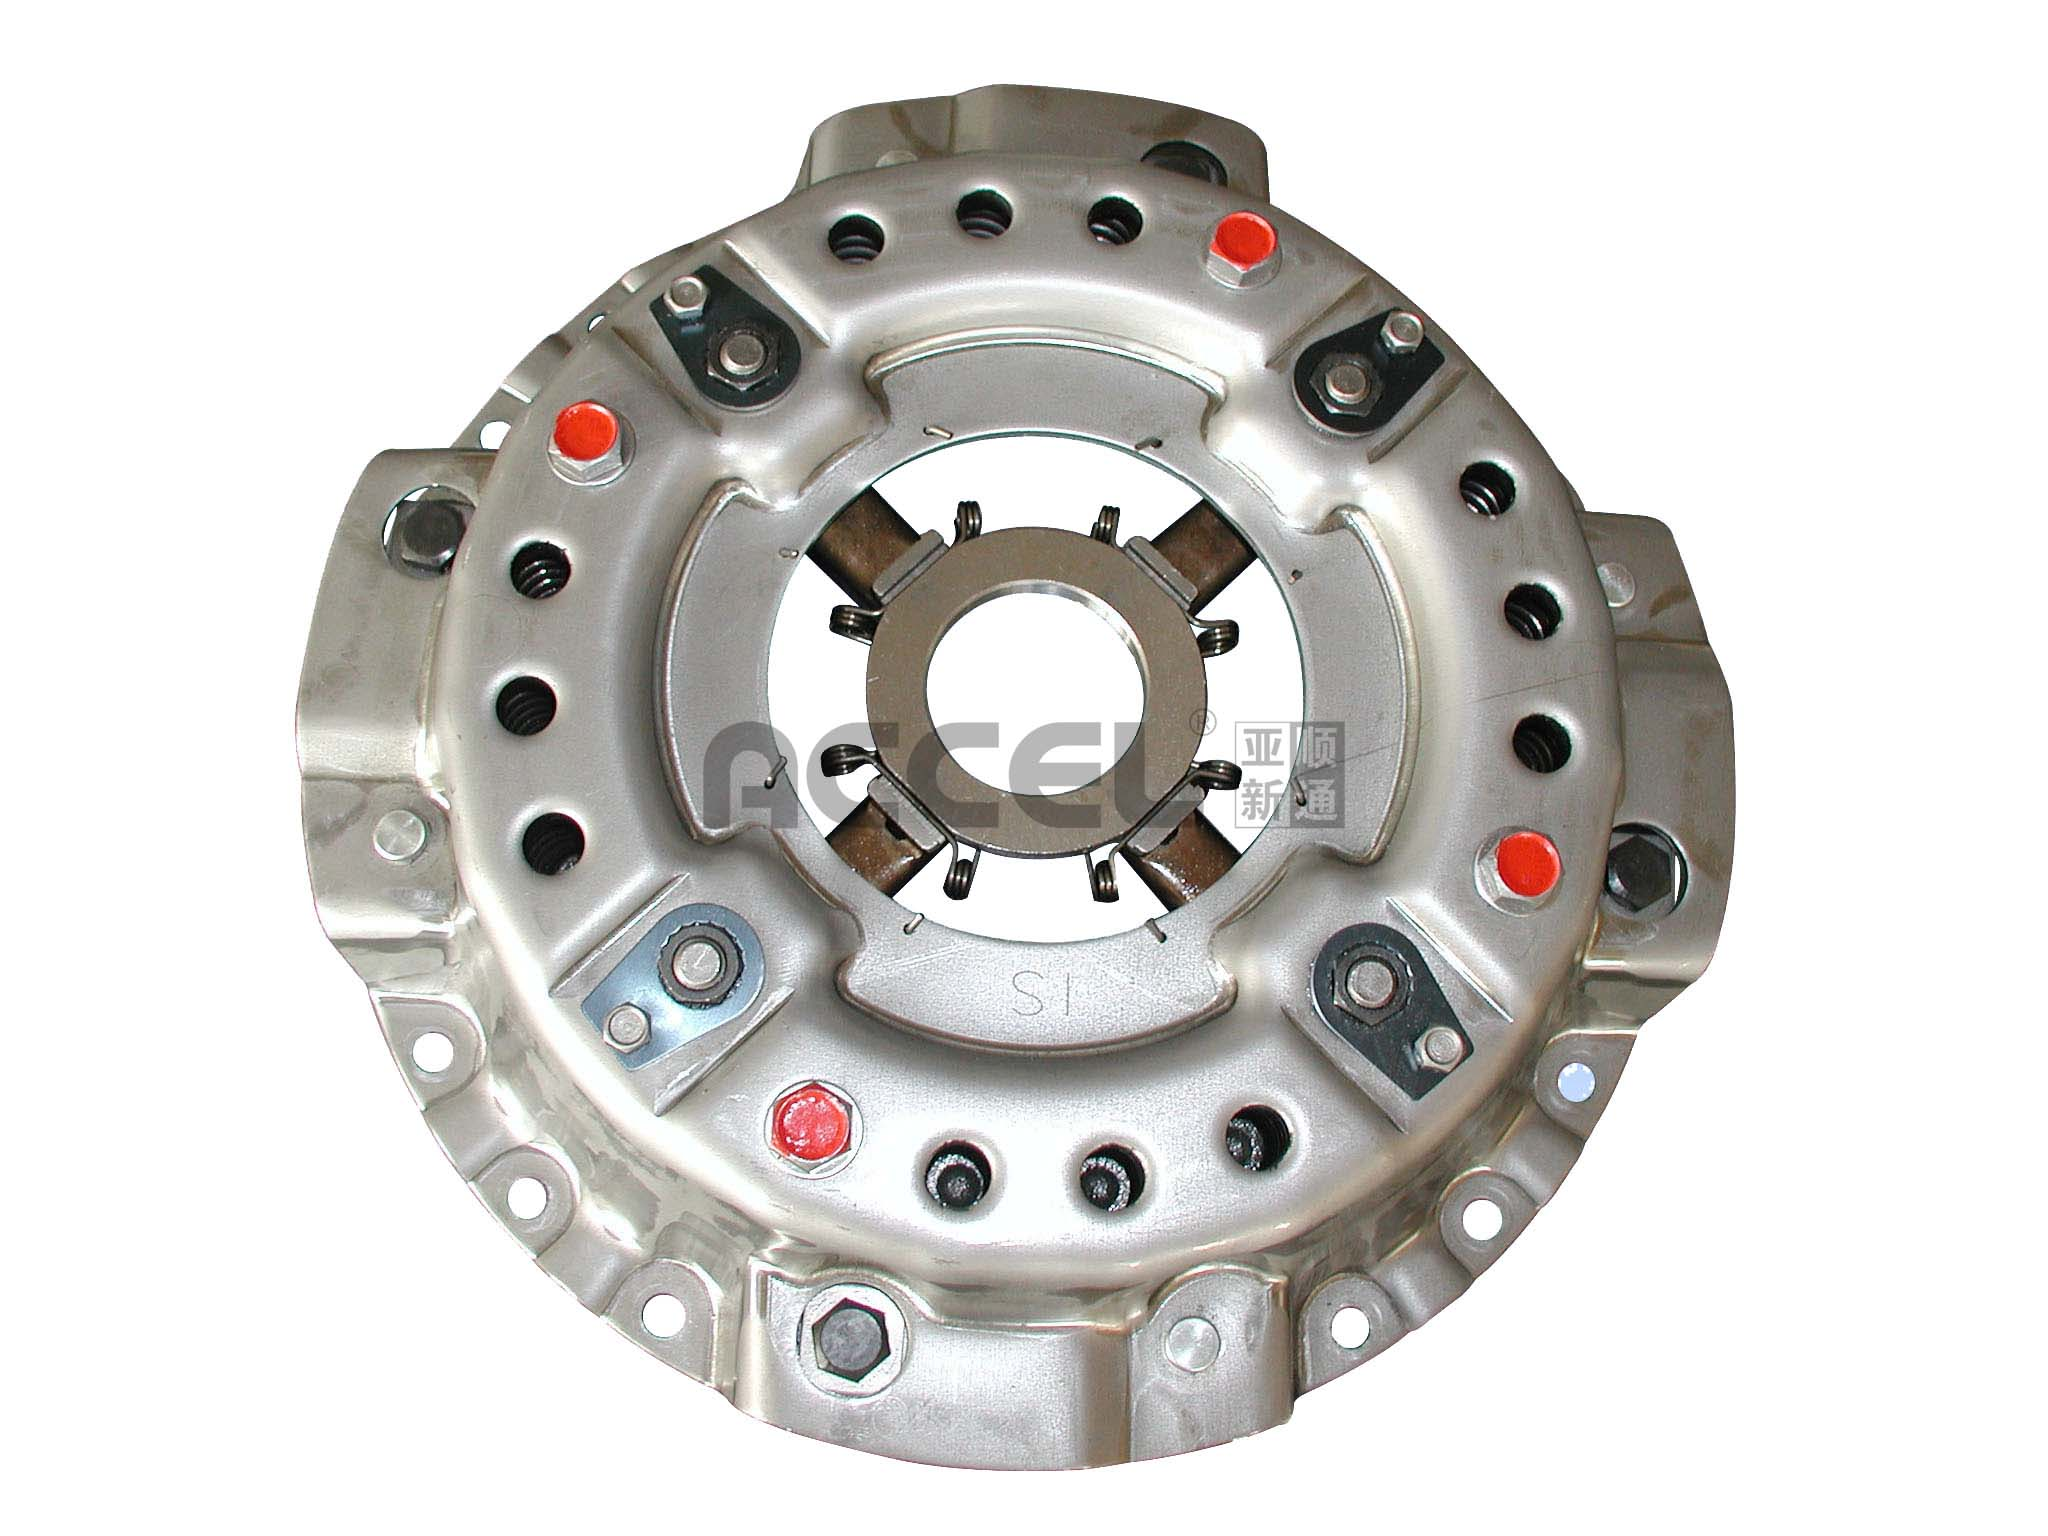 Clutch Cover/OE:1-31220-147-1/300*190*350/CHN-005/HINO/LY179/31210-1221/ISC549/ME520086